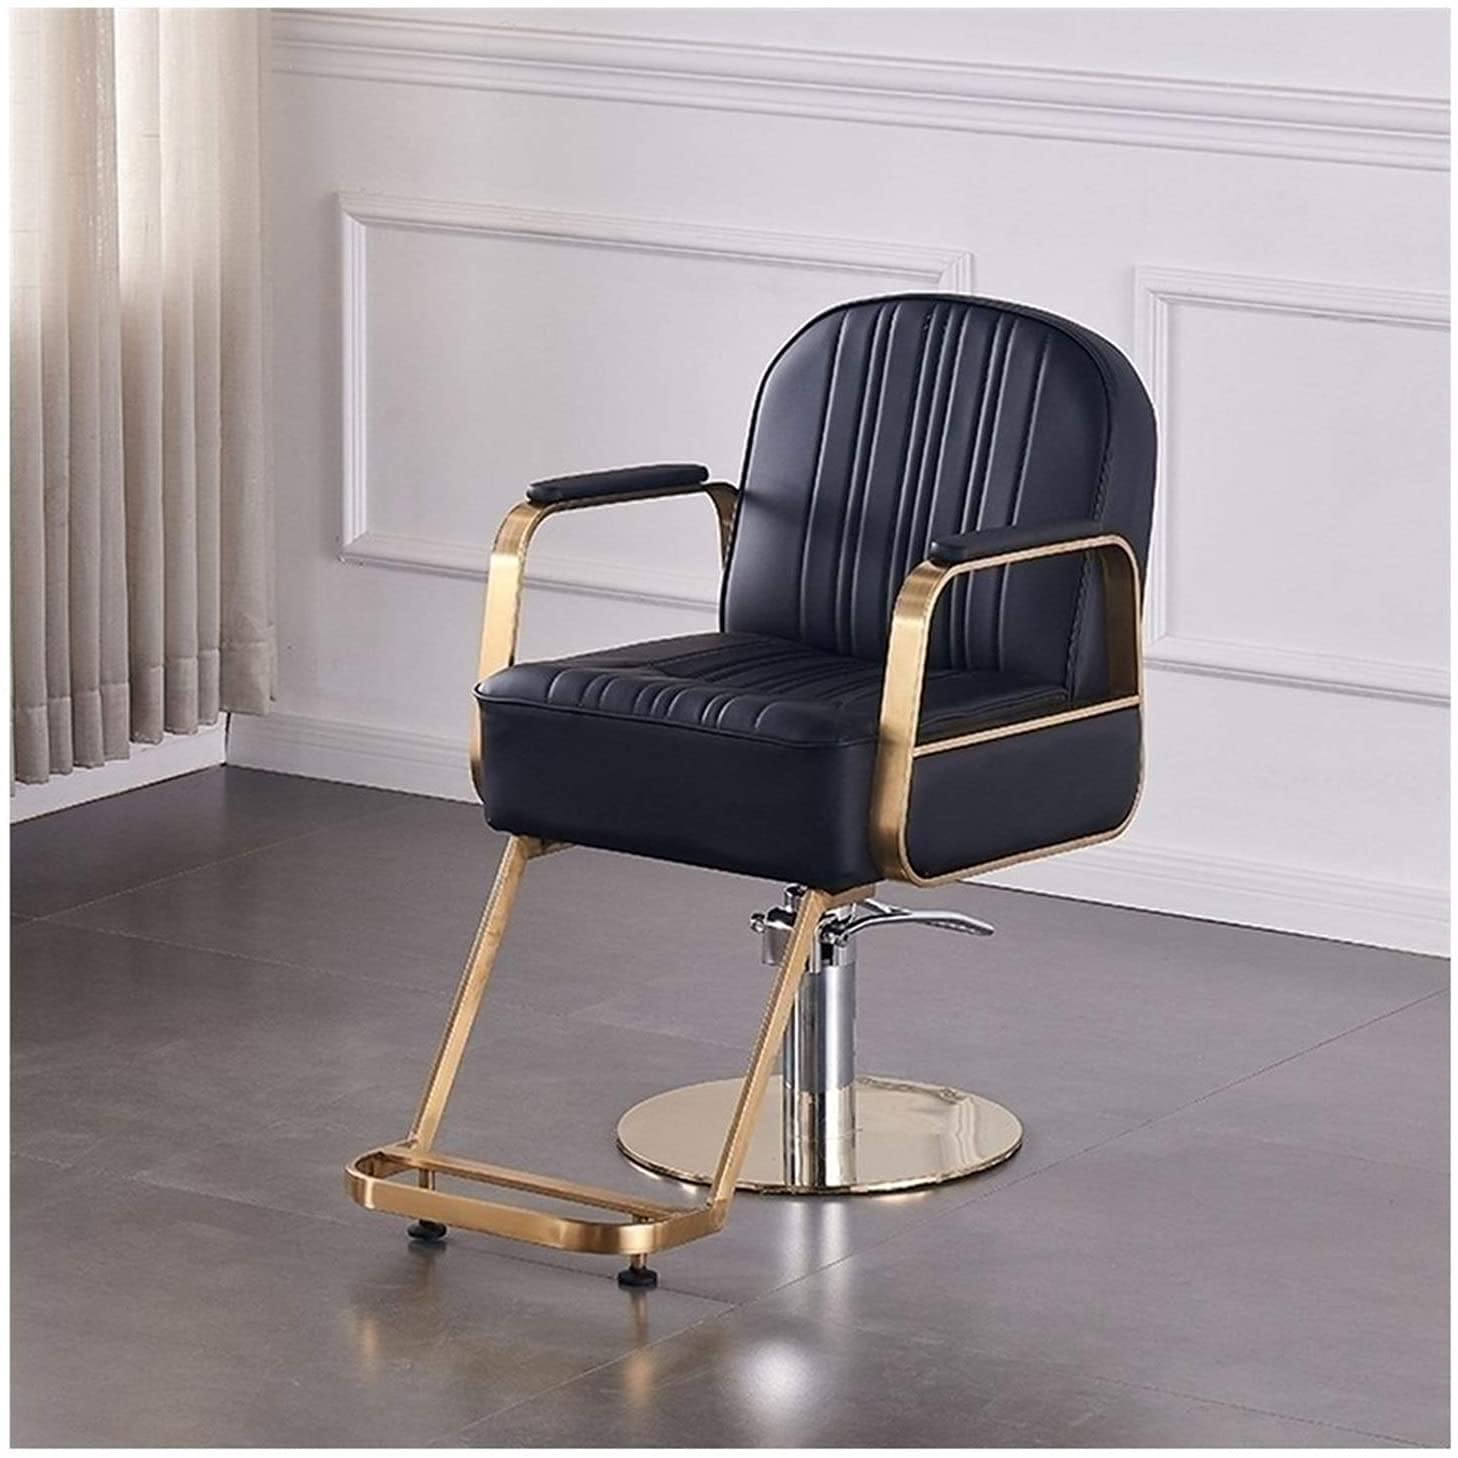 Salon Chair Barber Super popular specialty store for Stations Styling Dedication